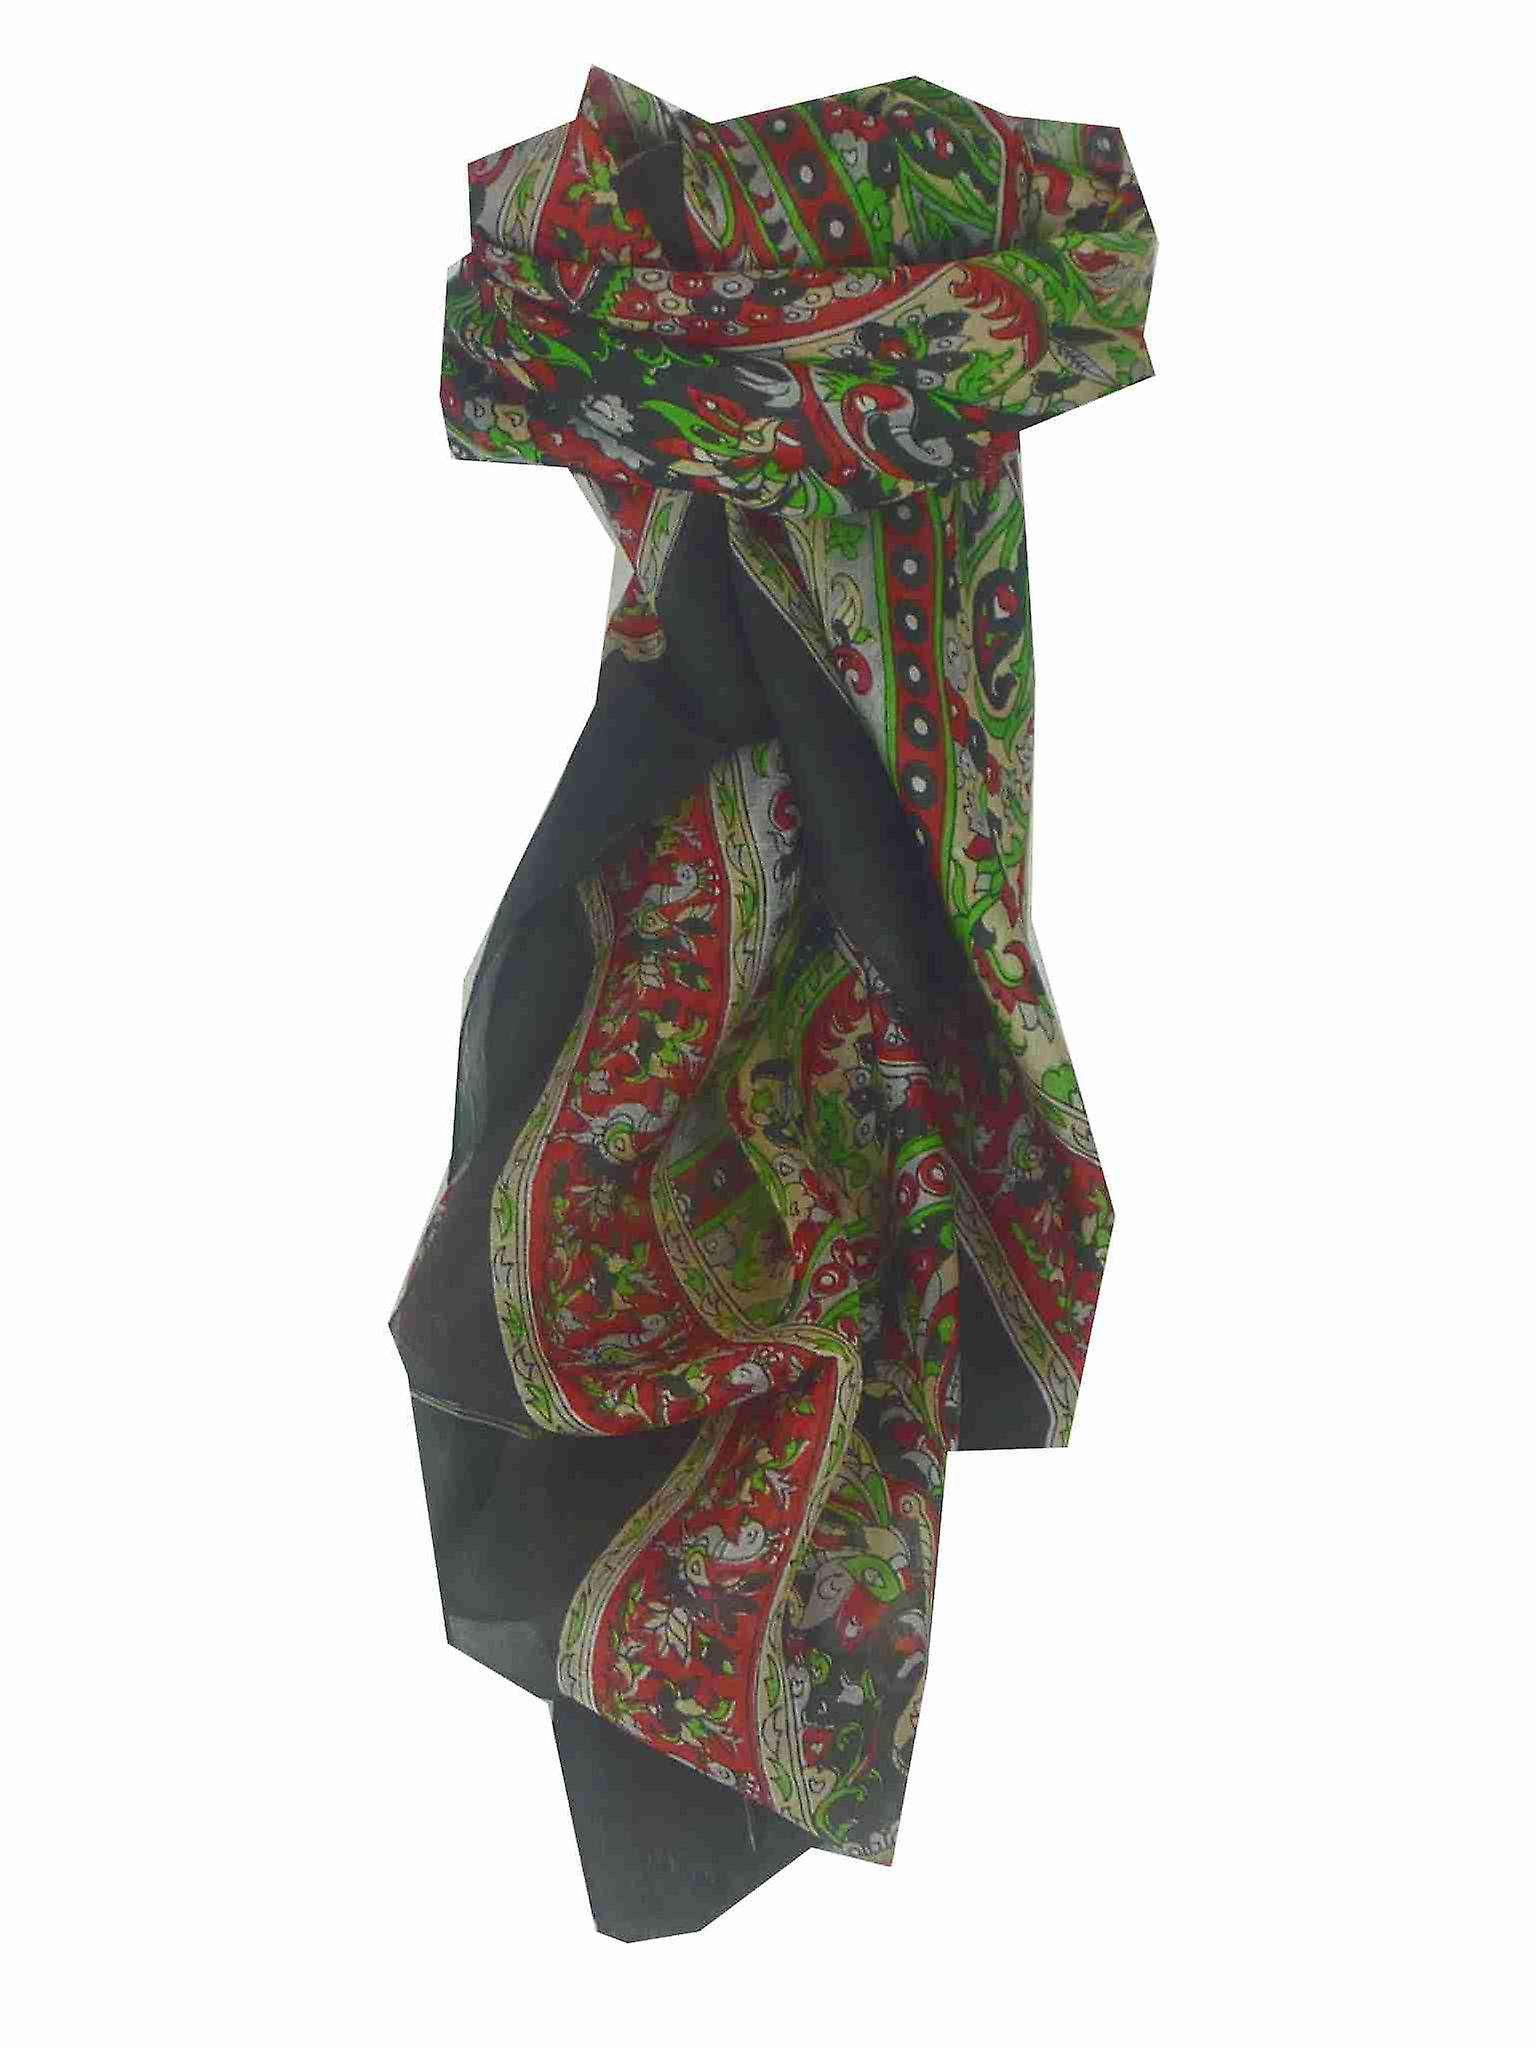 Mulberry Silk Traditional Square Scarf Leh Black by Pashmina & Silk